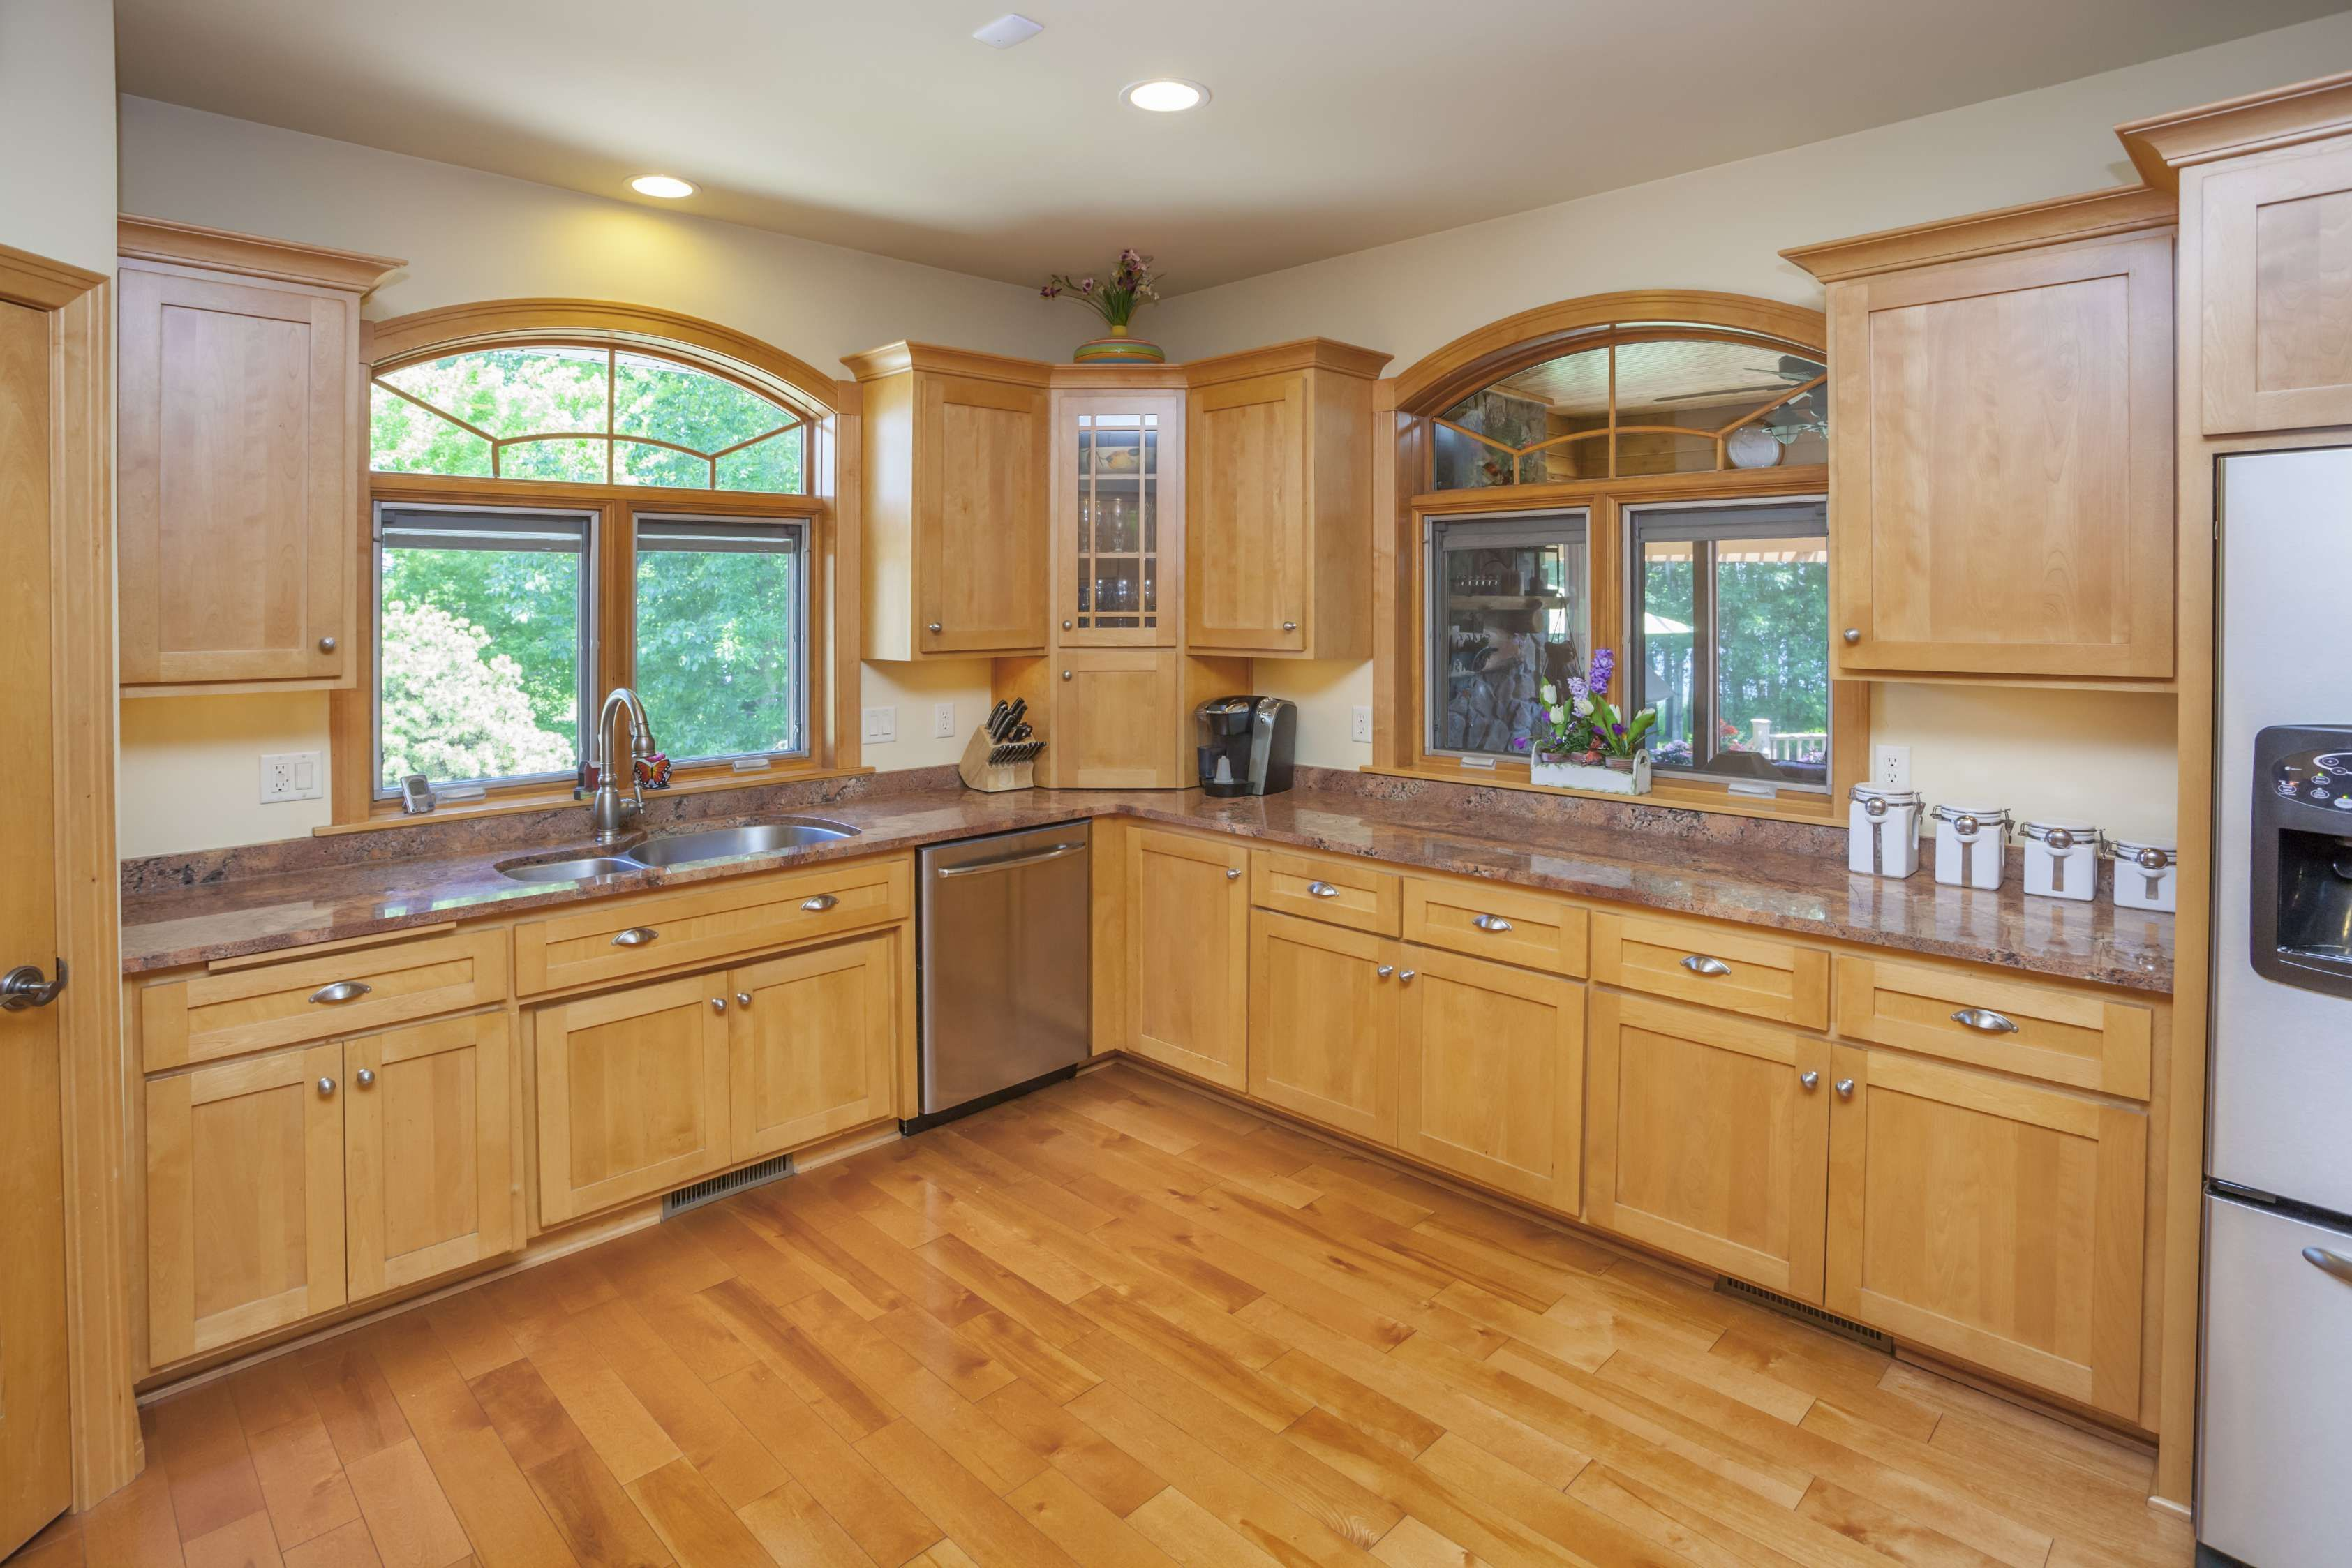 15 Fancy Best Color Of Kitchen Cabinets Color Of Wood Gallery Check More At Maple Kitchen Cabinets Maple Cabinets Kitchen Cabinets Color Combination